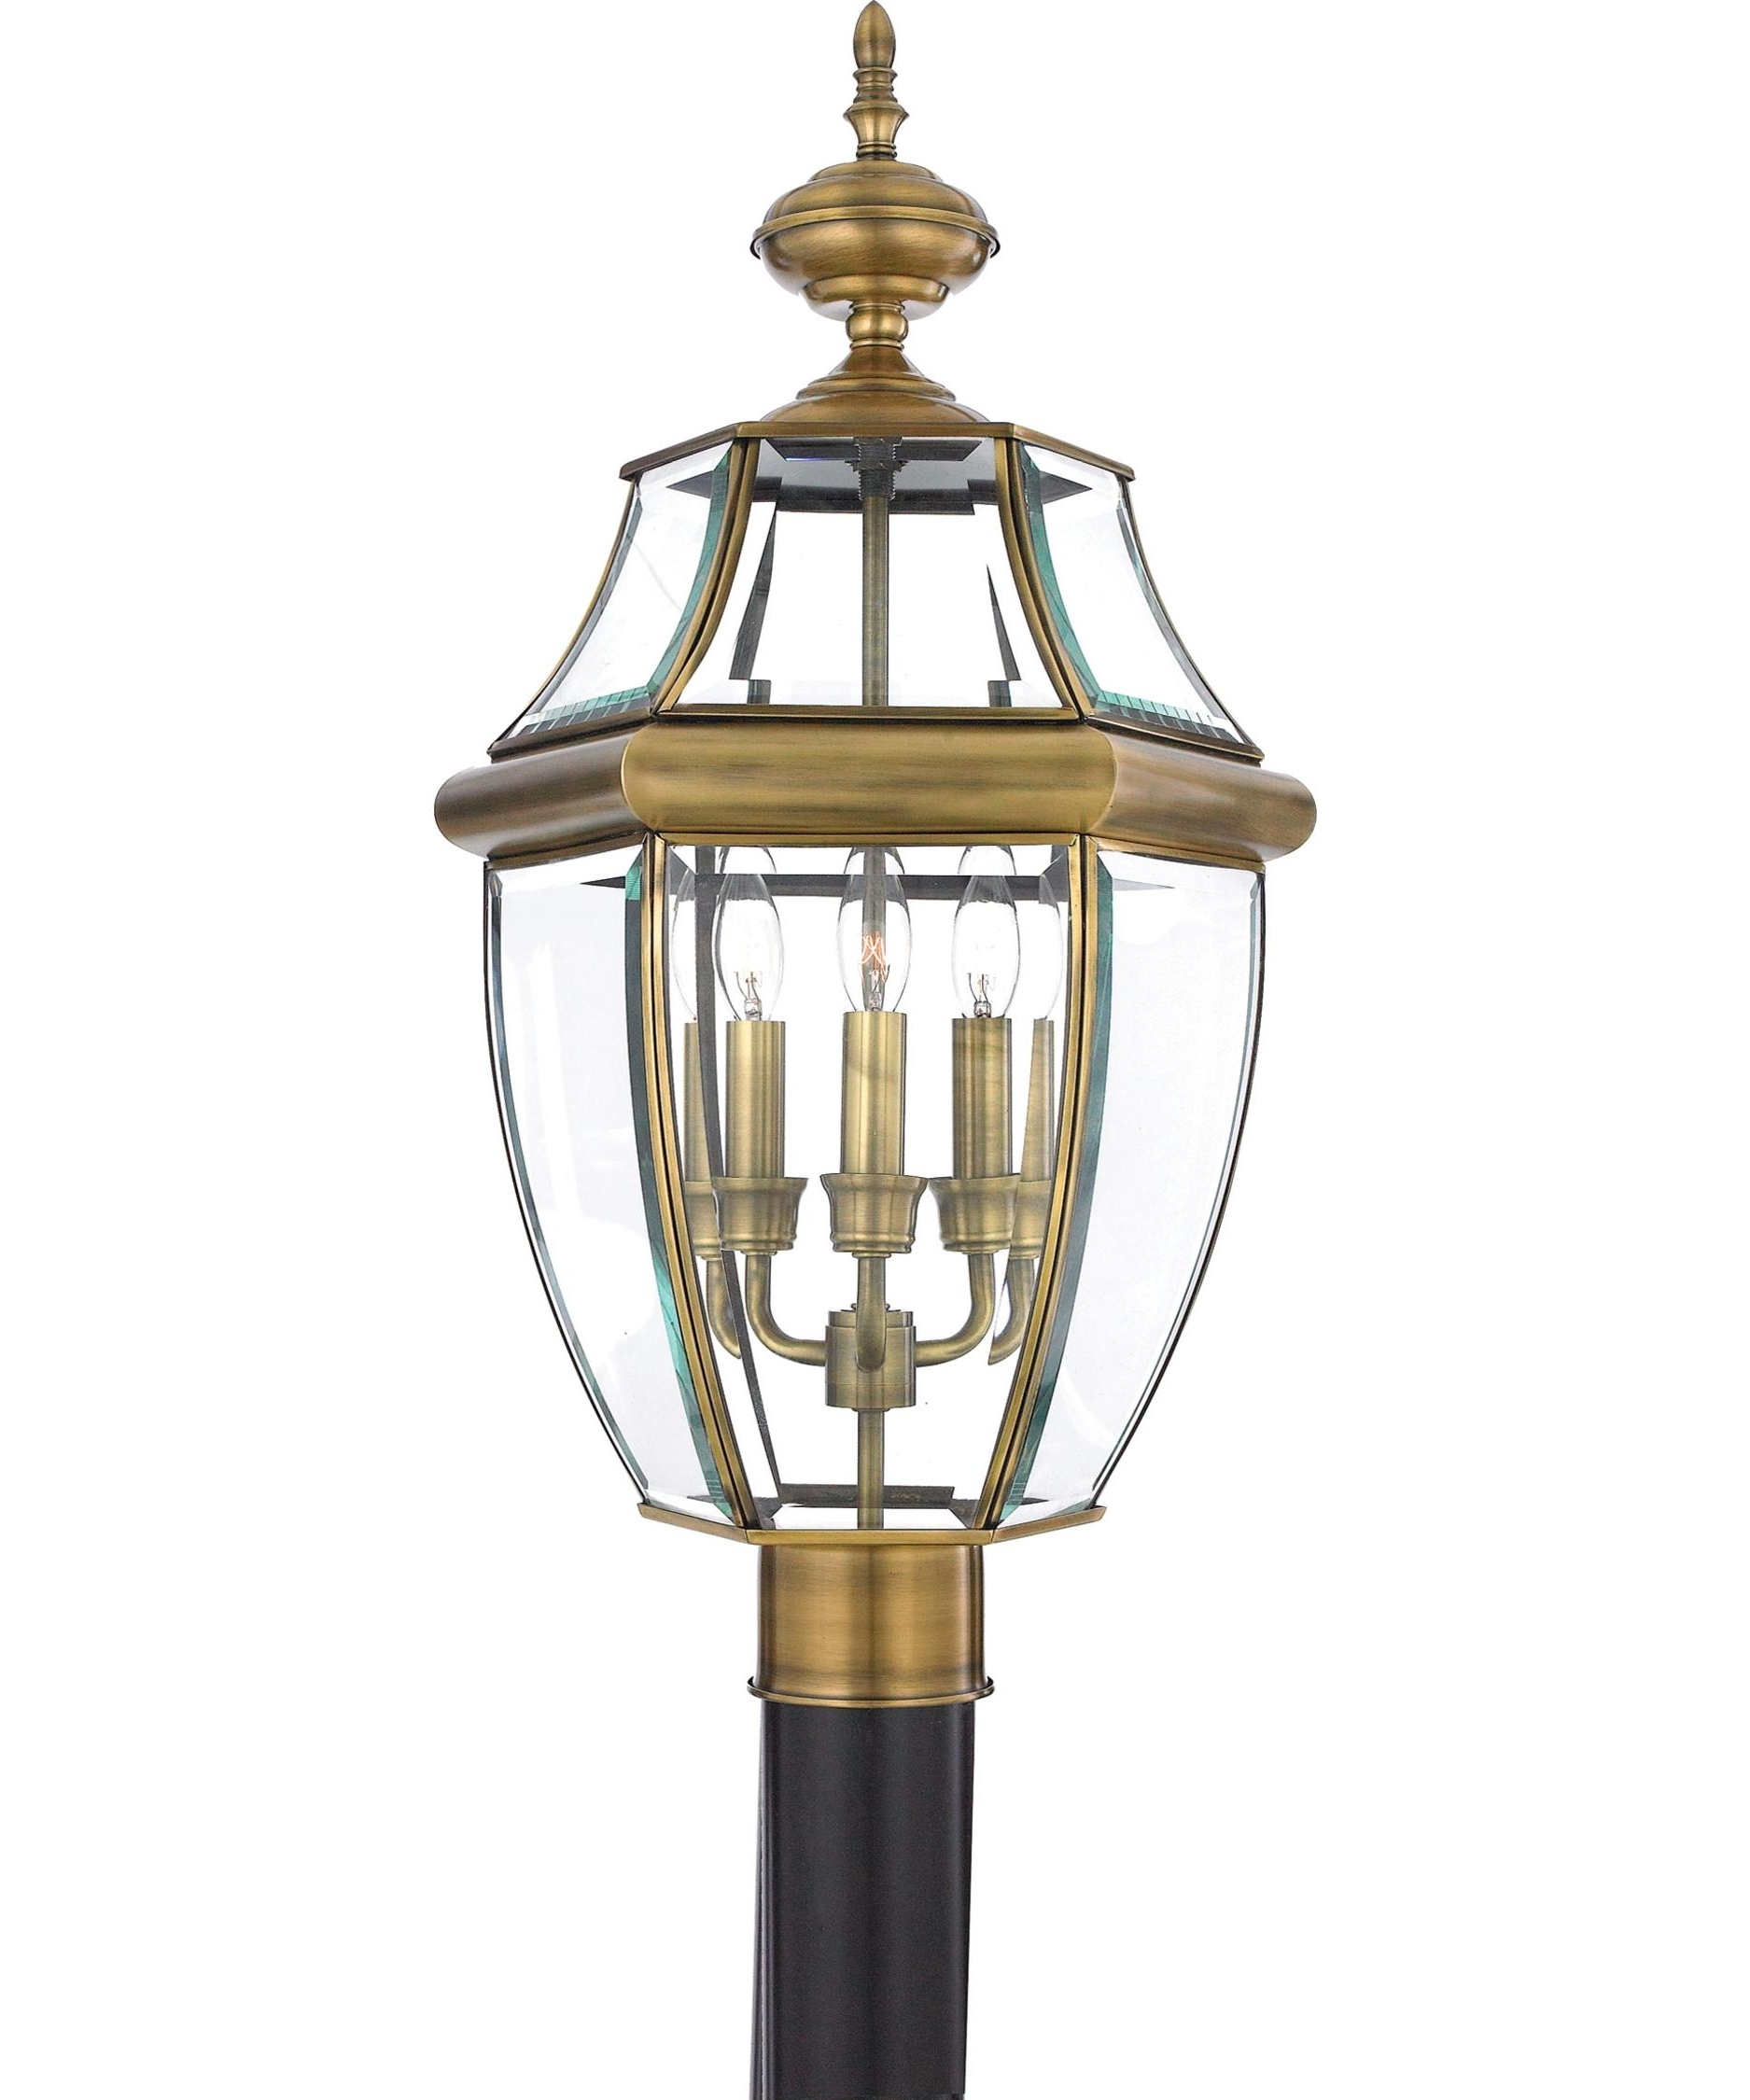 Most Up To Date Quoizel Ny9043 Newbury 12 Inch Wide 3 Light Outdoor Post Lamp For Quoizel Outdoor Lanterns (View 17 of 20)